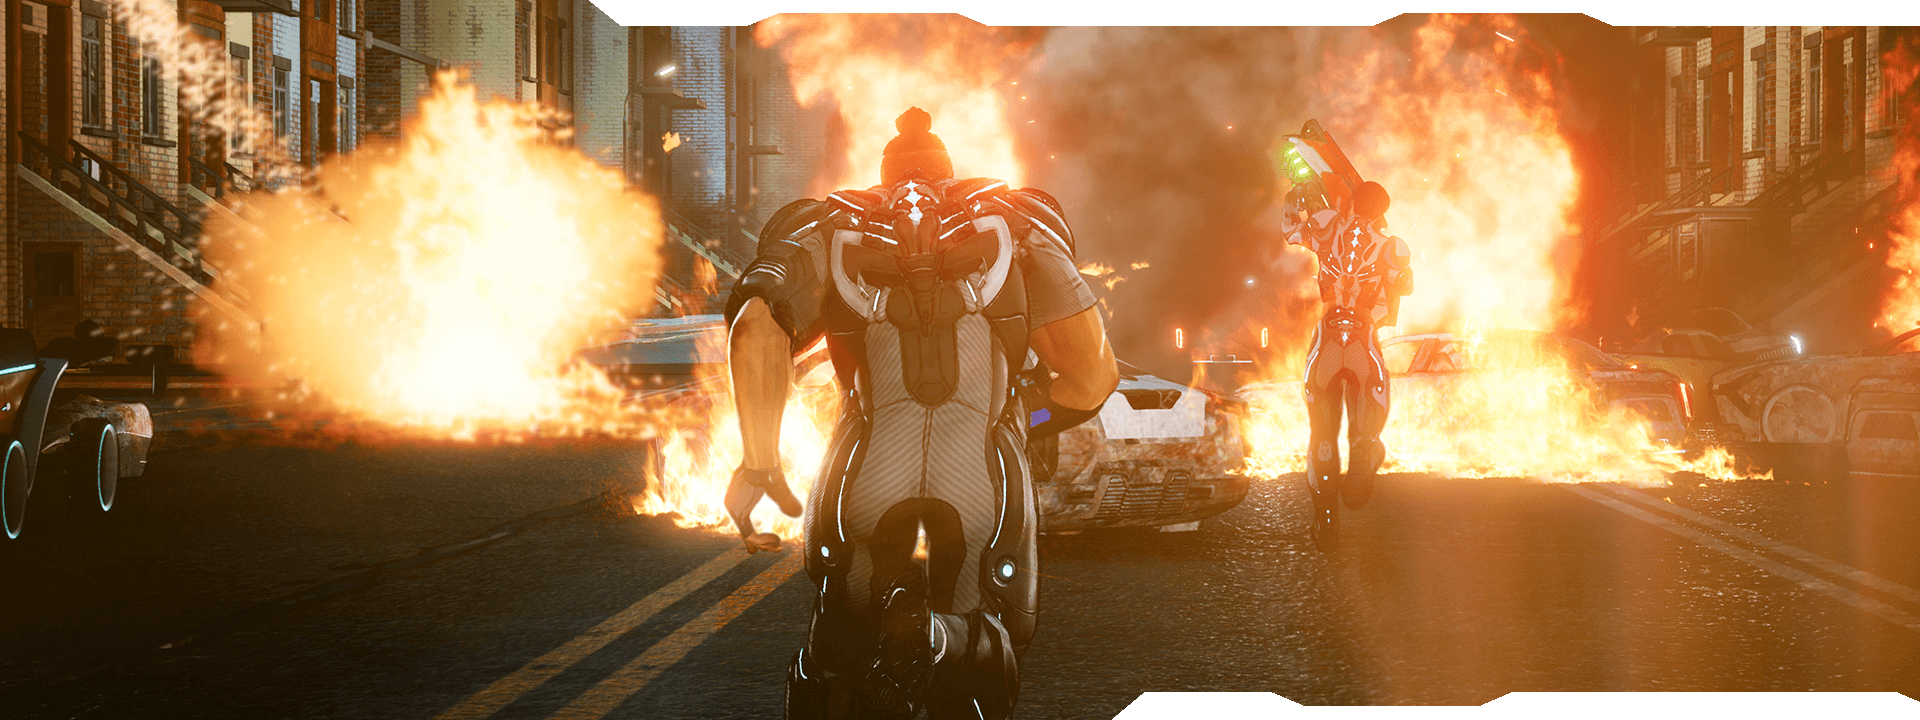 characters running through a neighborhood street with burning vehicles